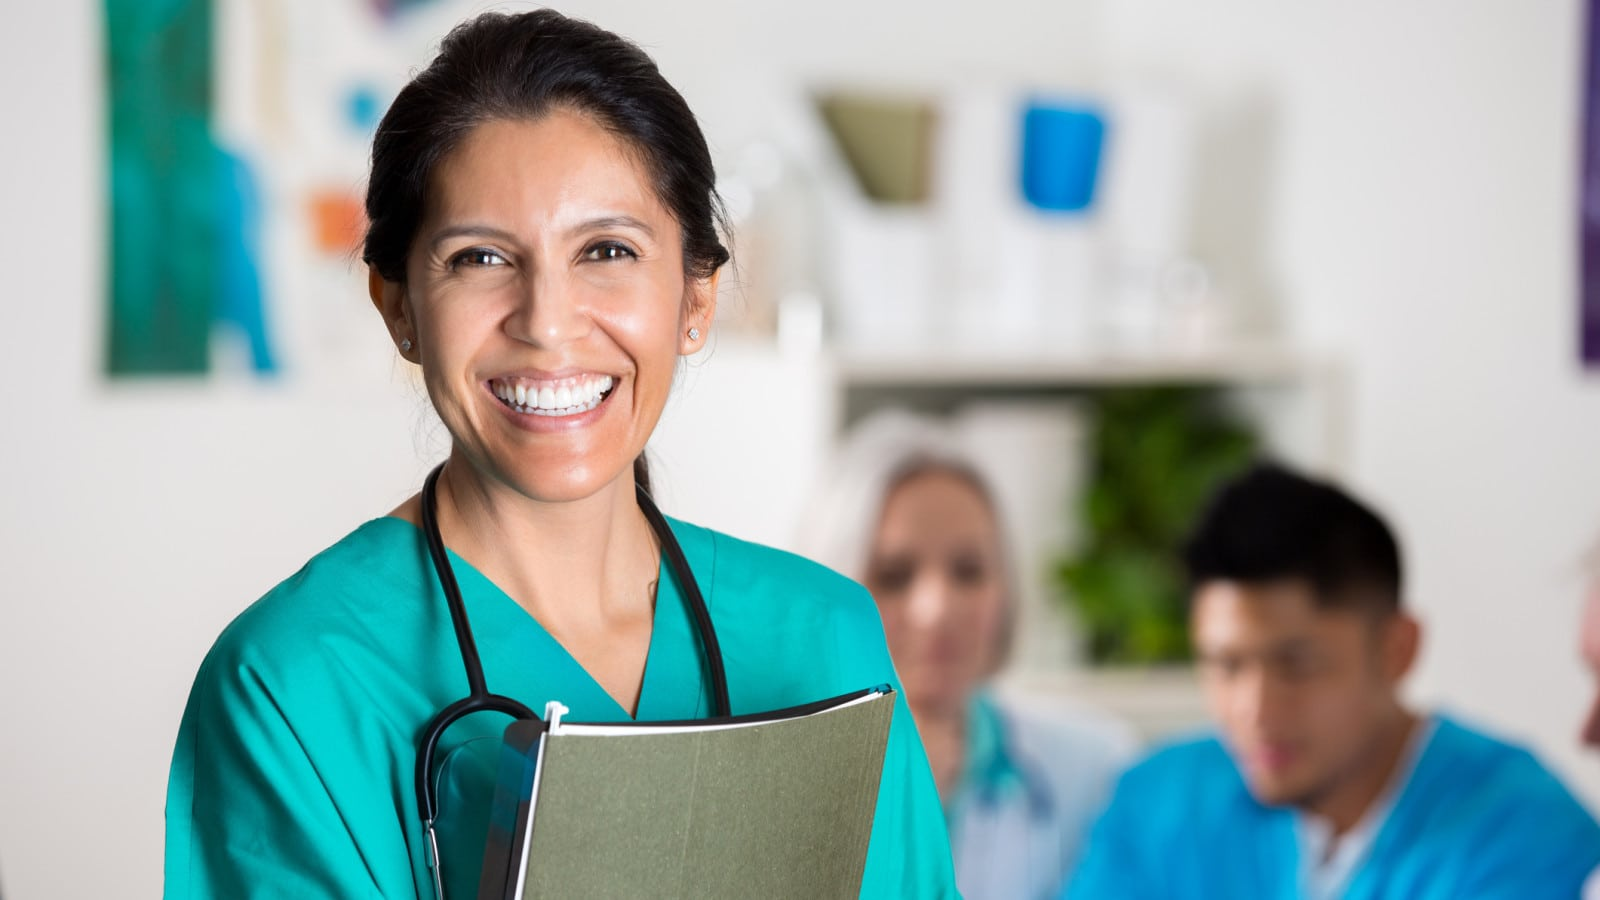 Female Doctor Smiling At The Camera Stock Photo